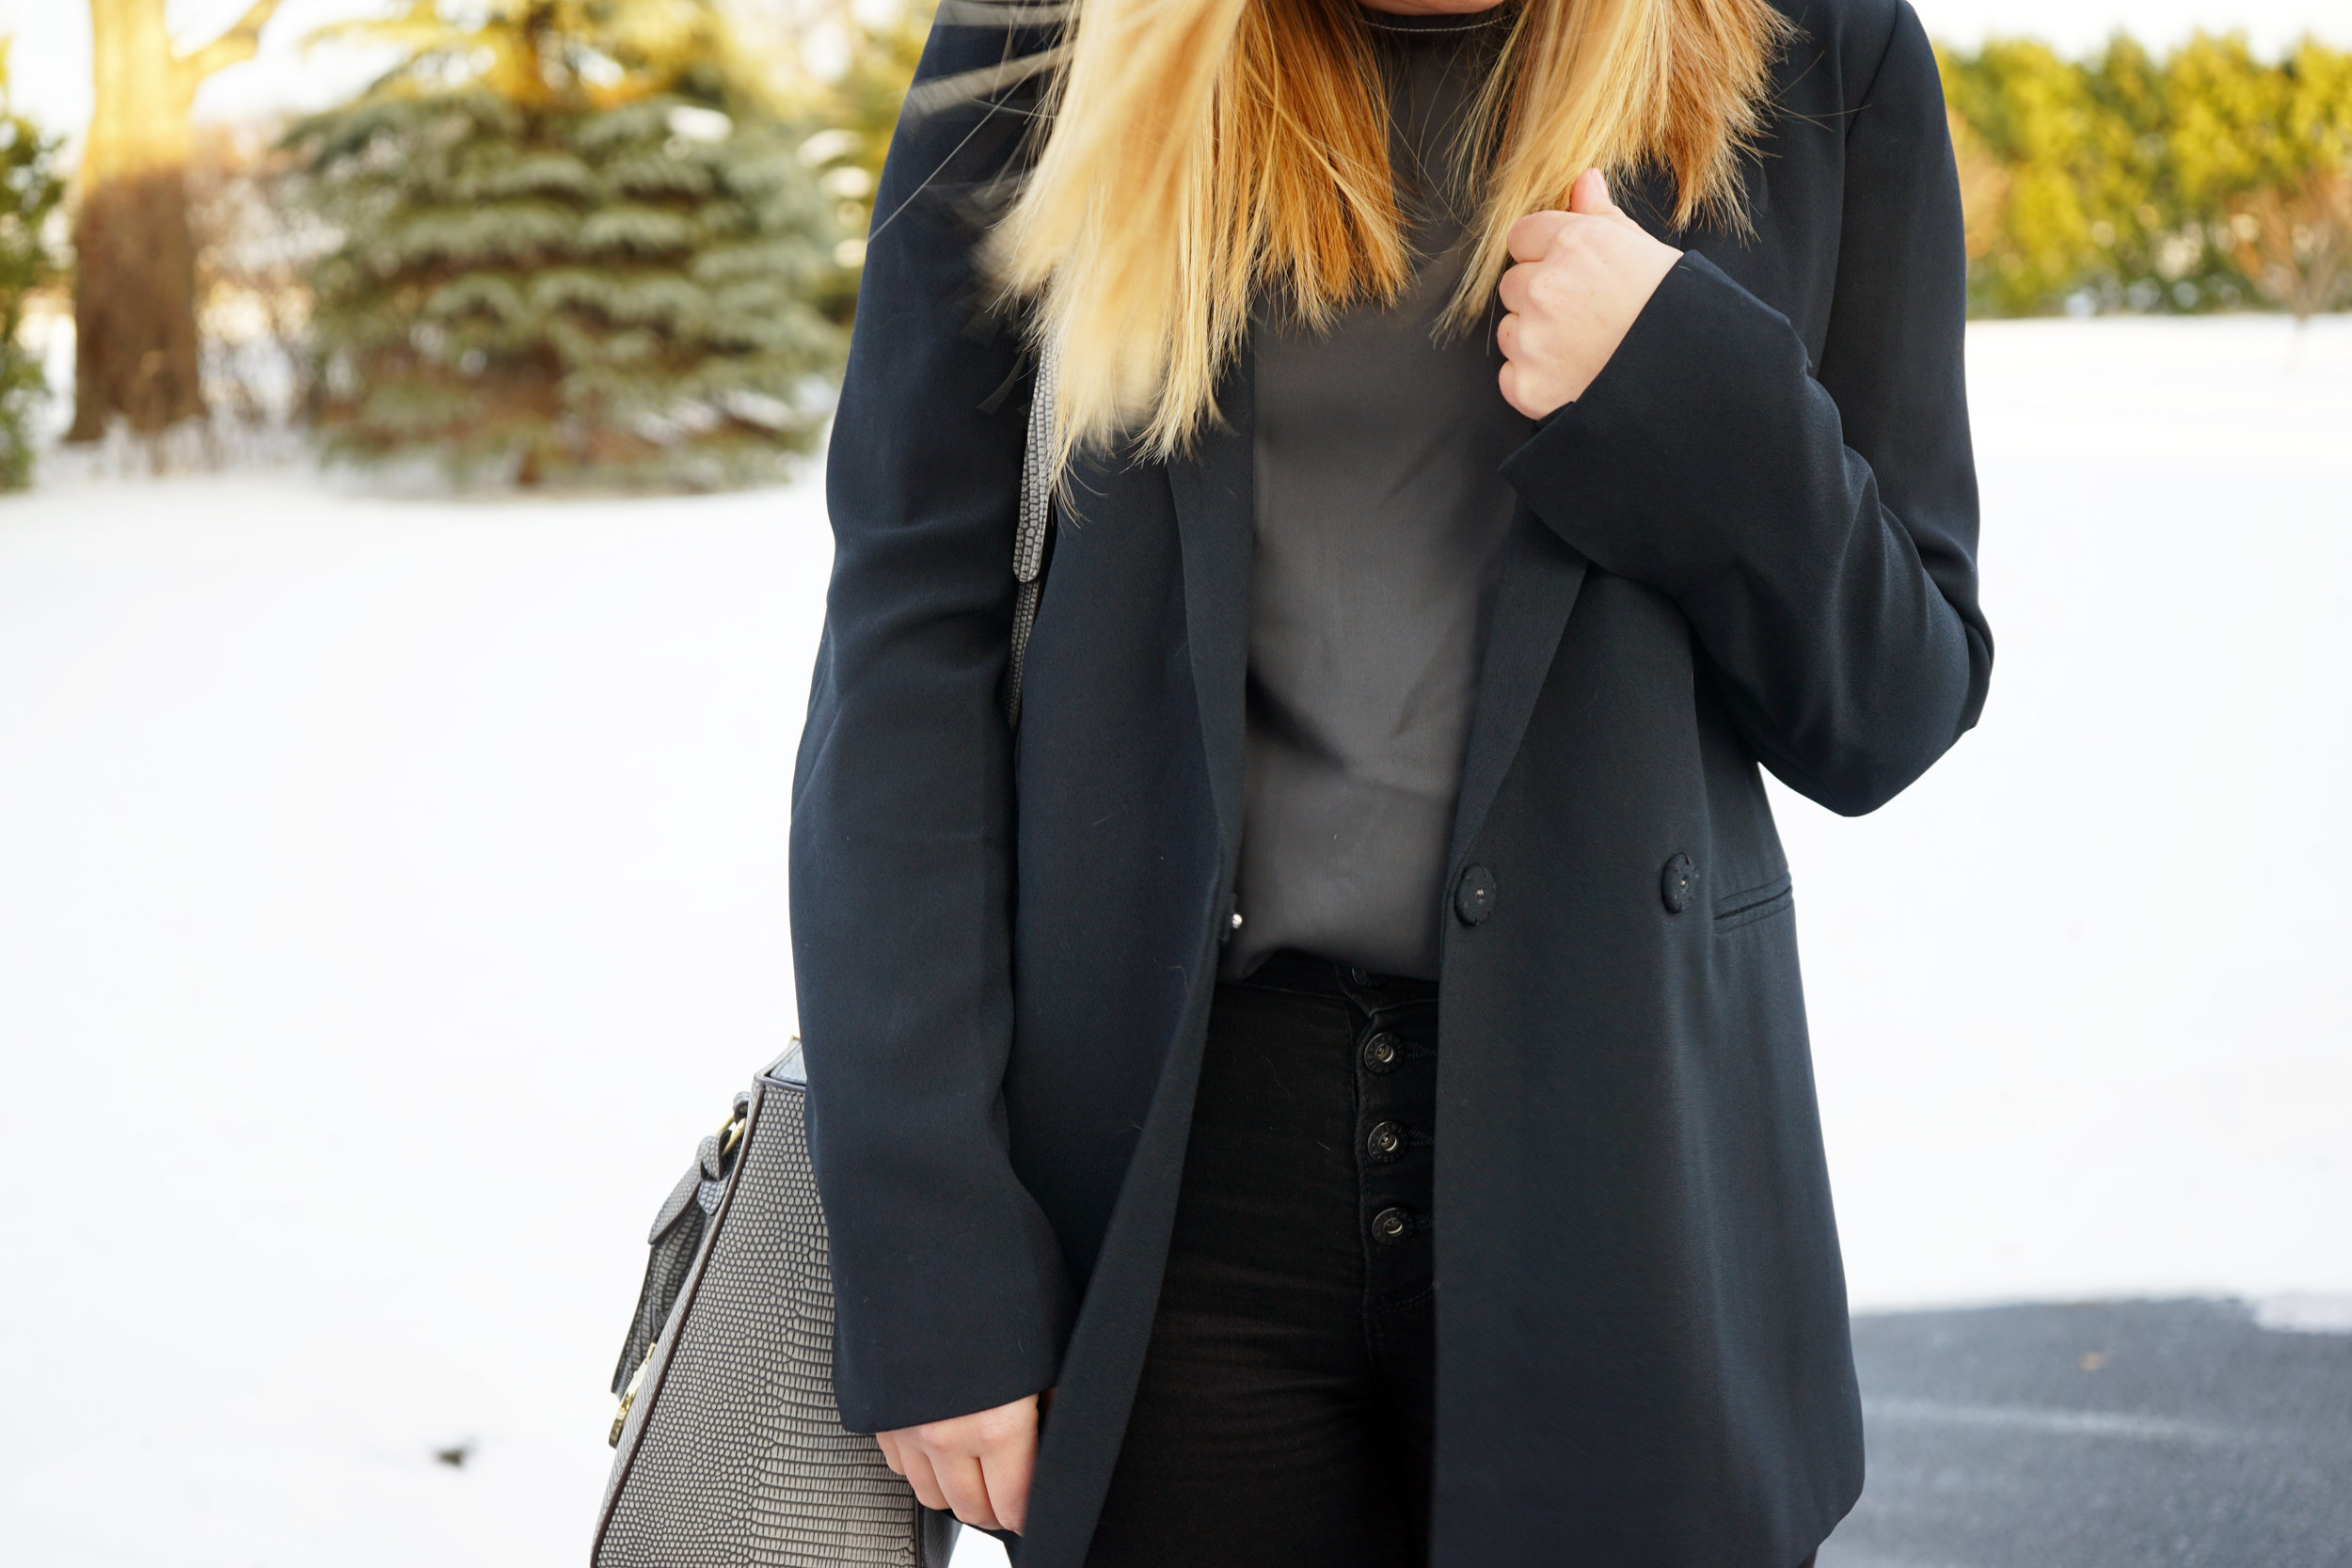 Maggie a la Mode - Madewell Boyfriend Blazer, Theory Melana Georgette Silk Top, AG Button Up Fly Jeans, Henri Bendel West 57th Lizard Turnlock Satchel